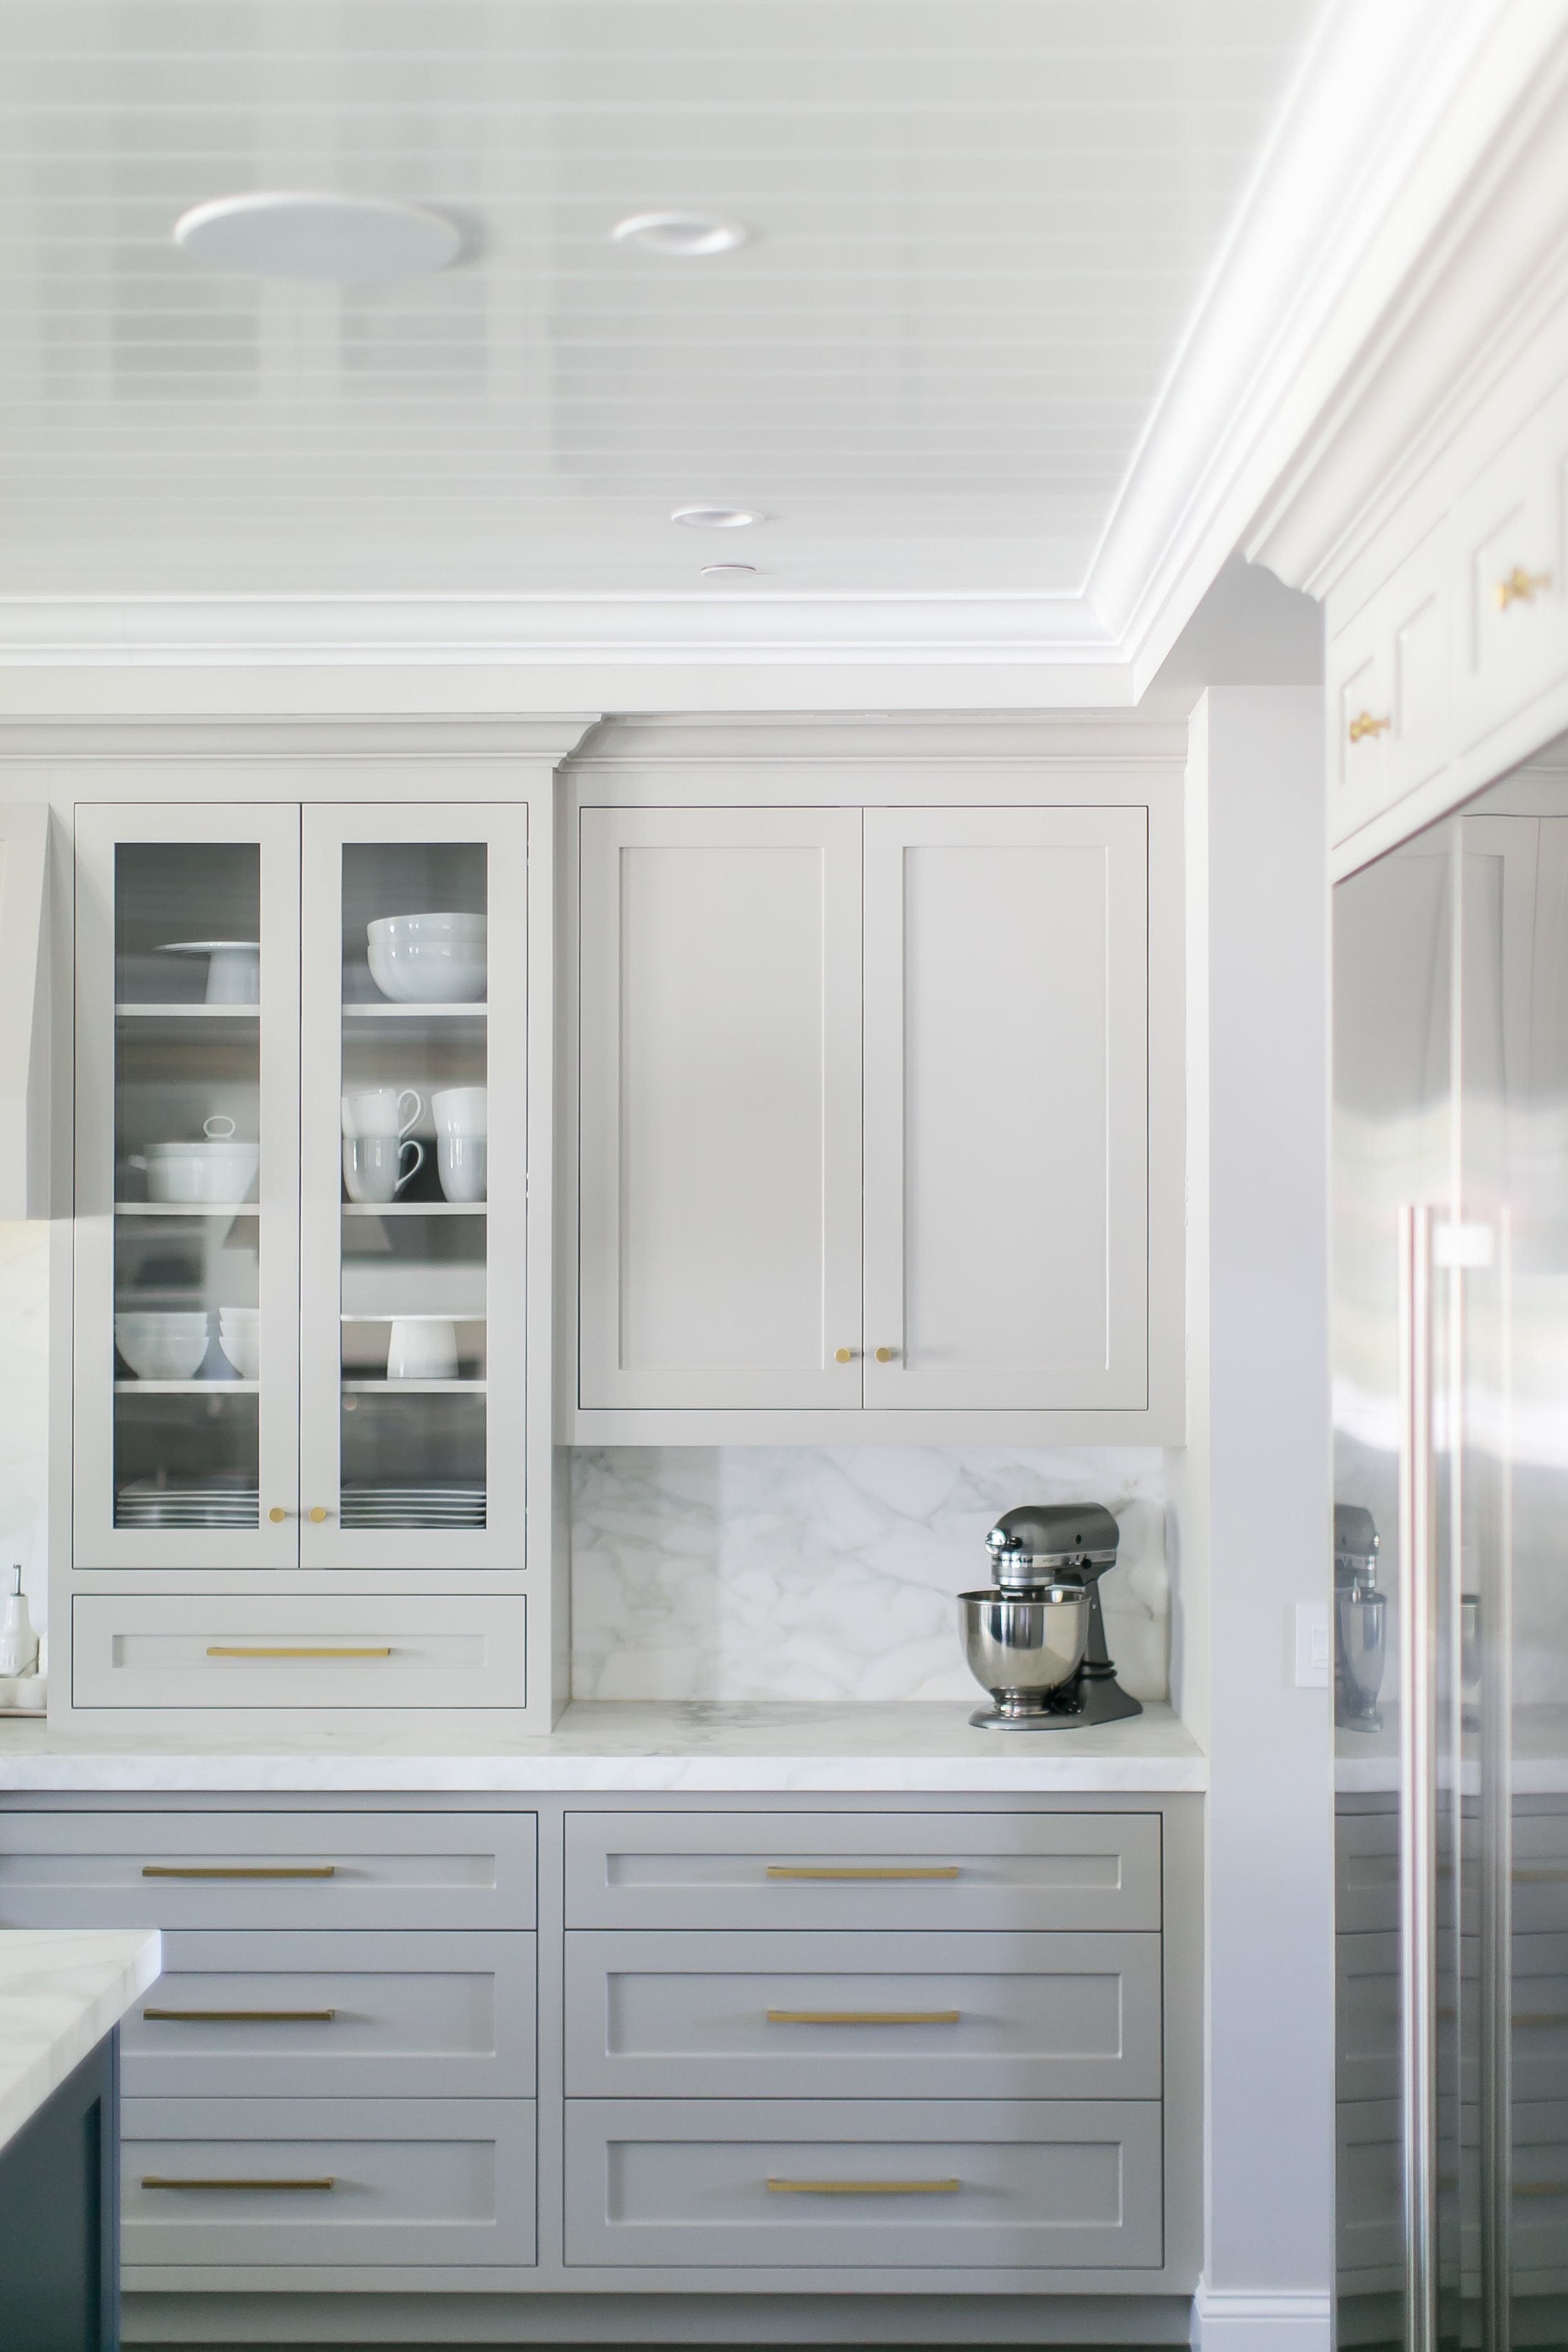 Gorgeous light grey cabinets, marbled countertops & backsplash ...